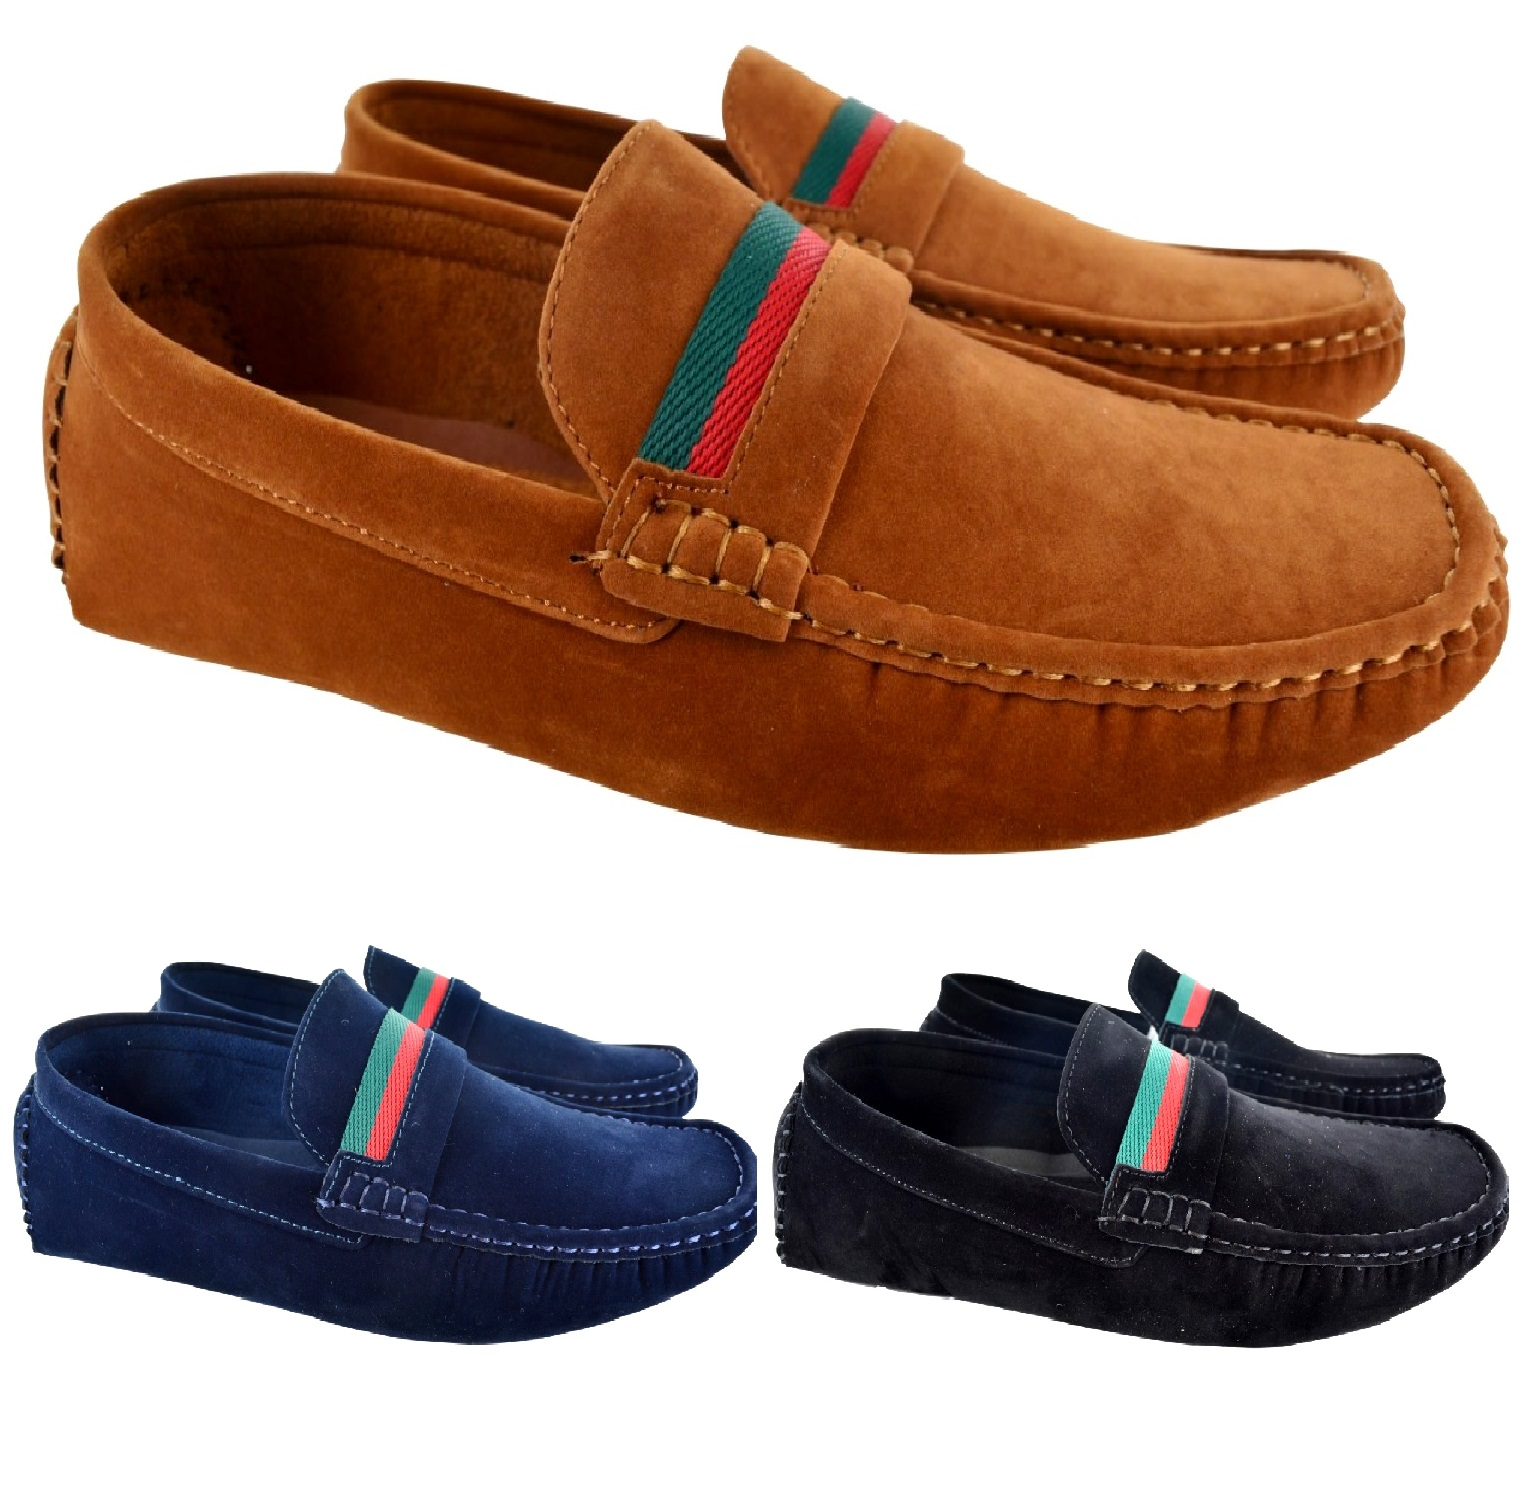 8197fae8d2c Details about MENS NEW FLAT SMART LOAFERS MOCCASINS SLIP ON DRIVING PARTY  CASUAL SHOES UK SIZE